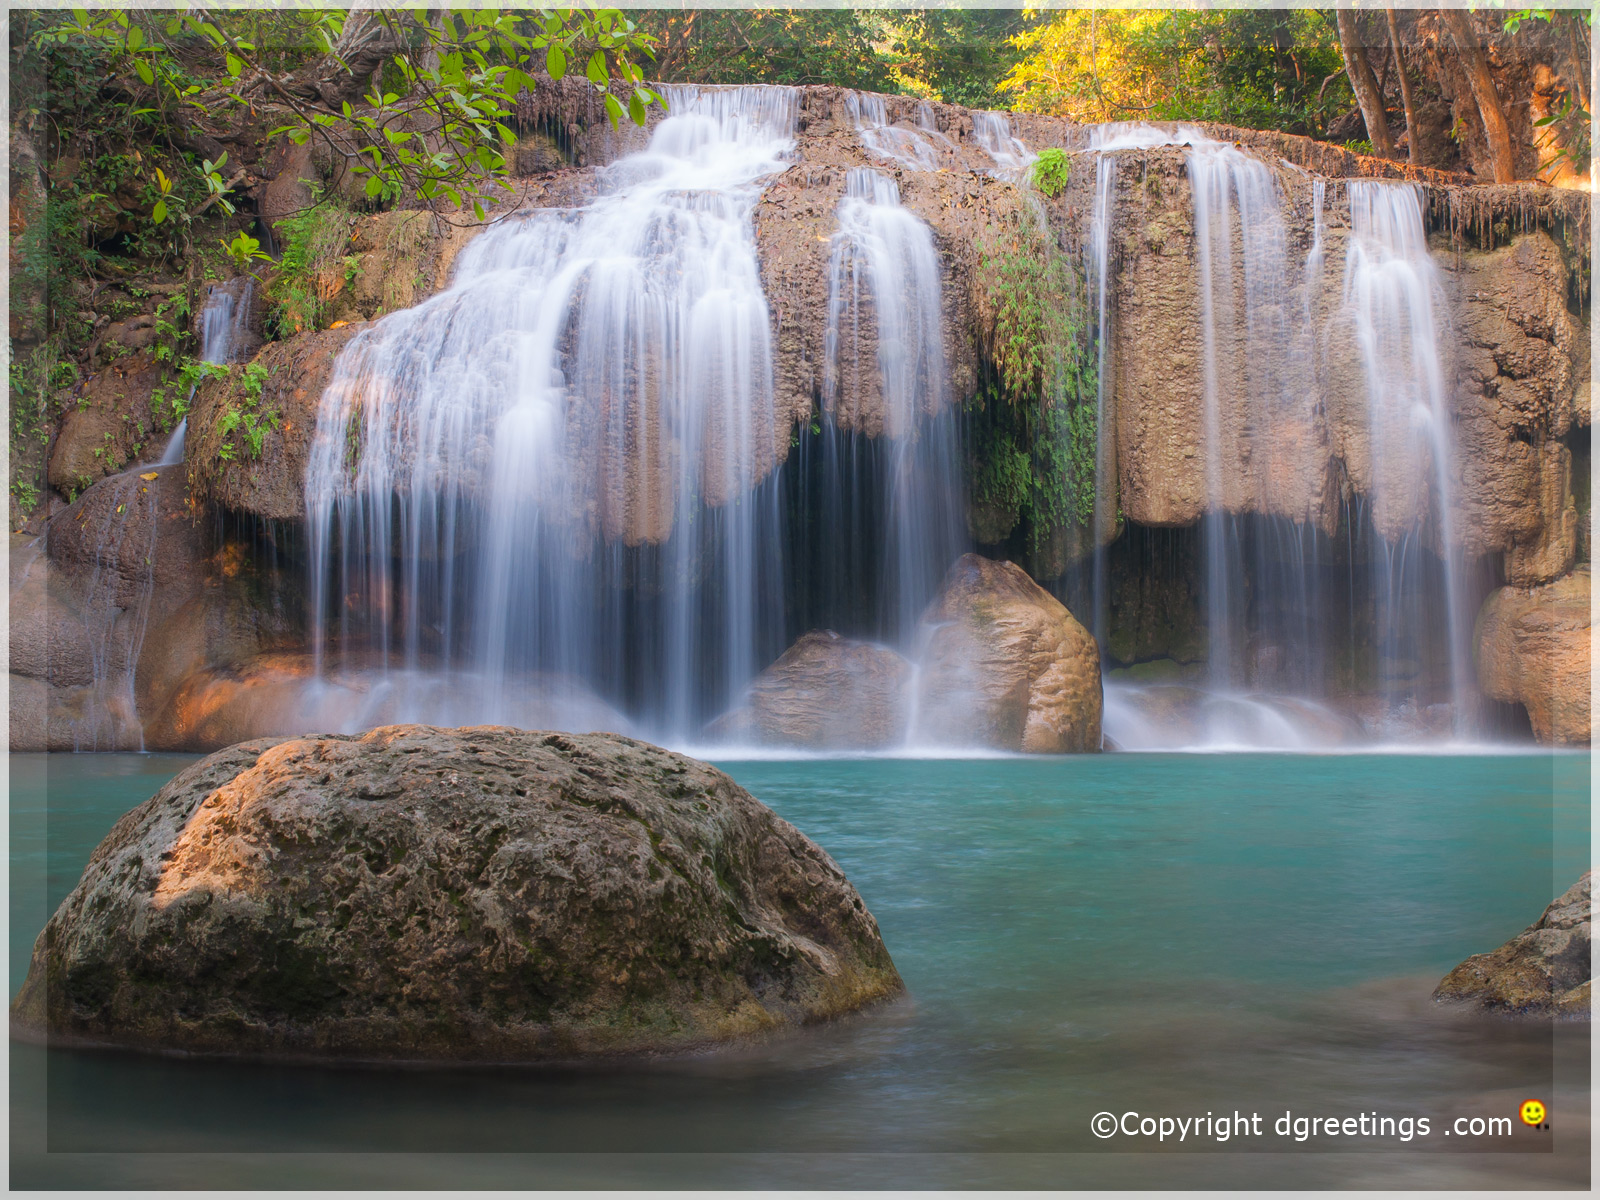 Moving Waterfall Wallpaper Free Download - Top Backgrounds & Wallpapers